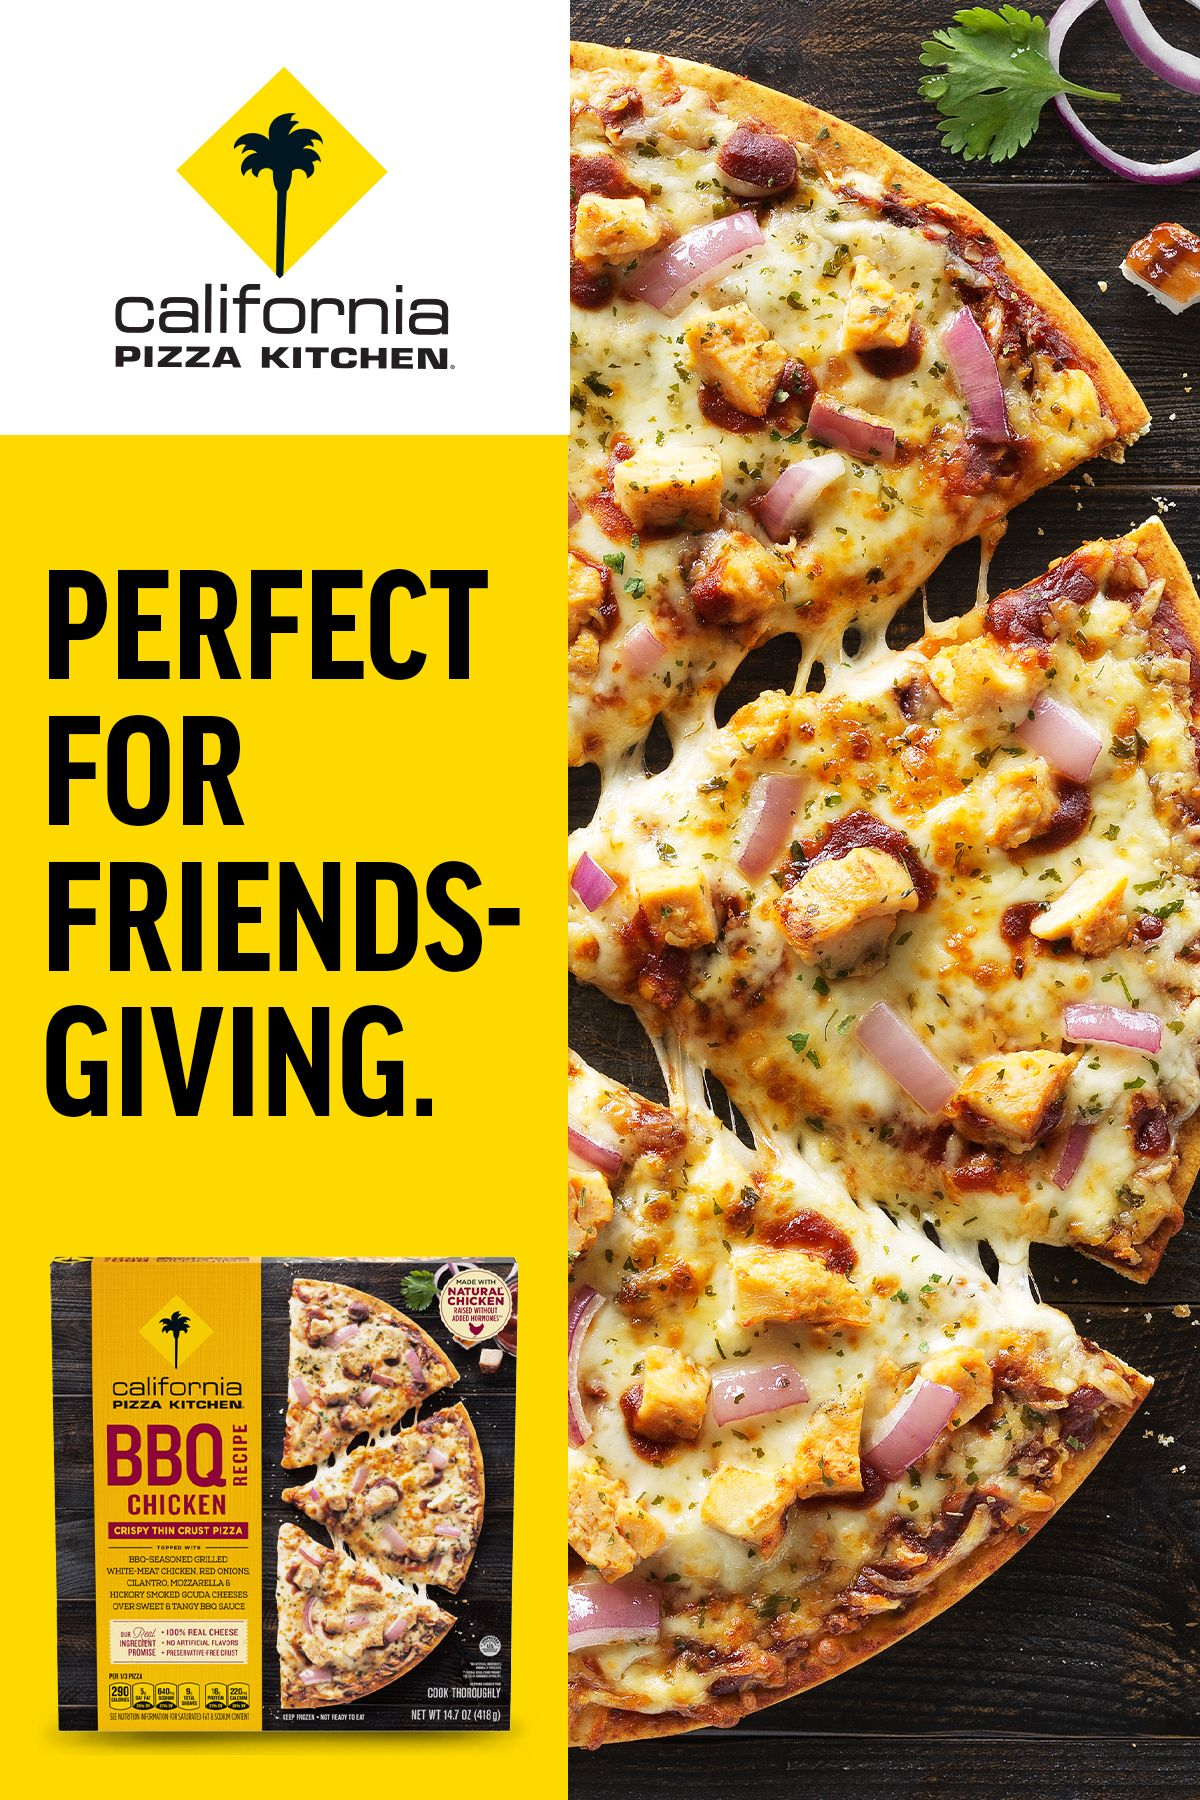 Try Something Unexpected For Friendsgiving With California Pizza